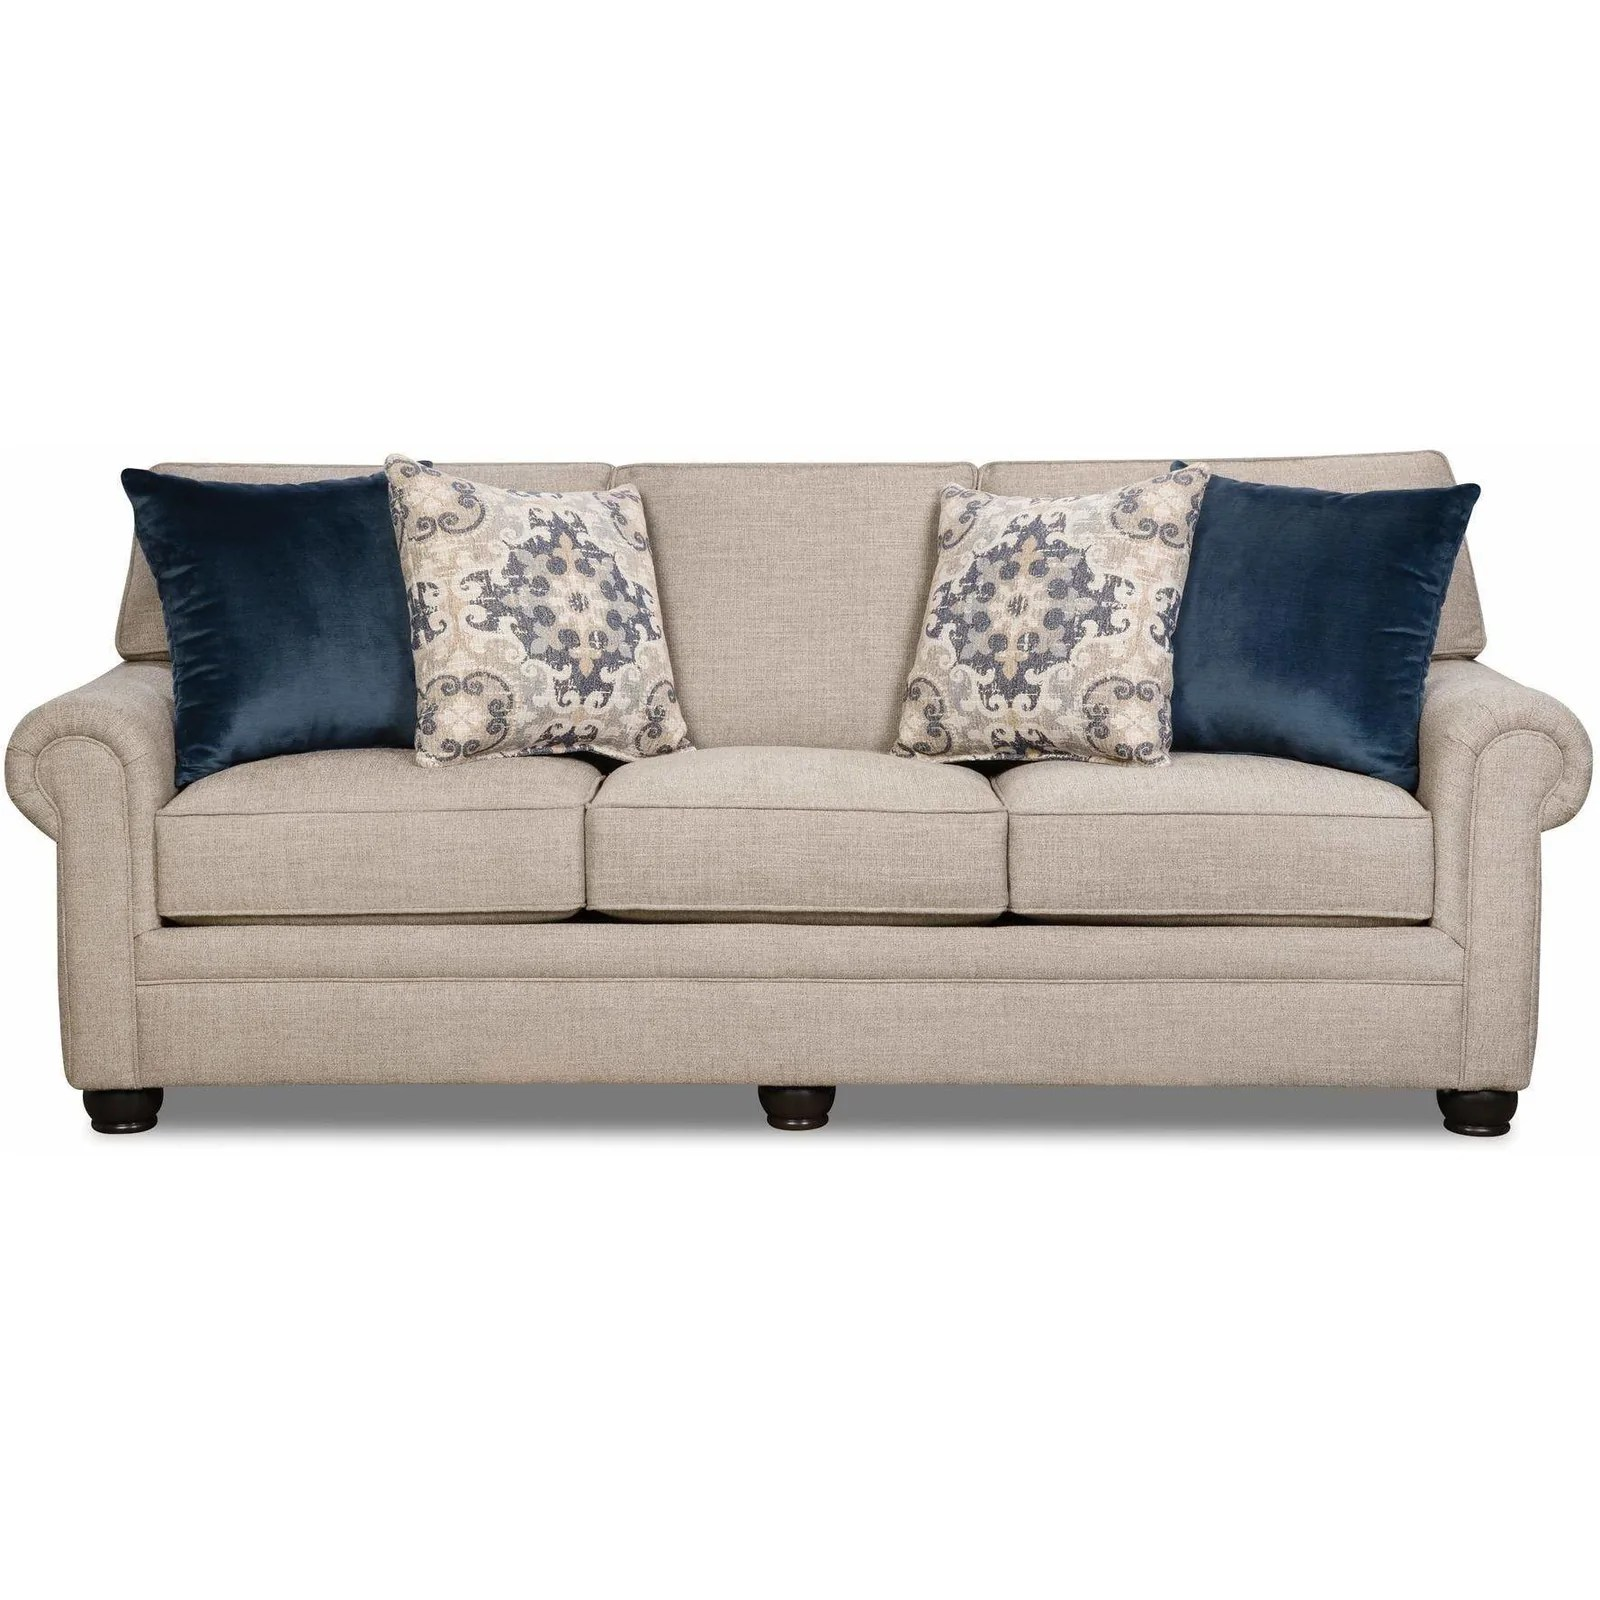 Sleeper Sofa Quick Delivery Sleeper Sofas Furniture Fair